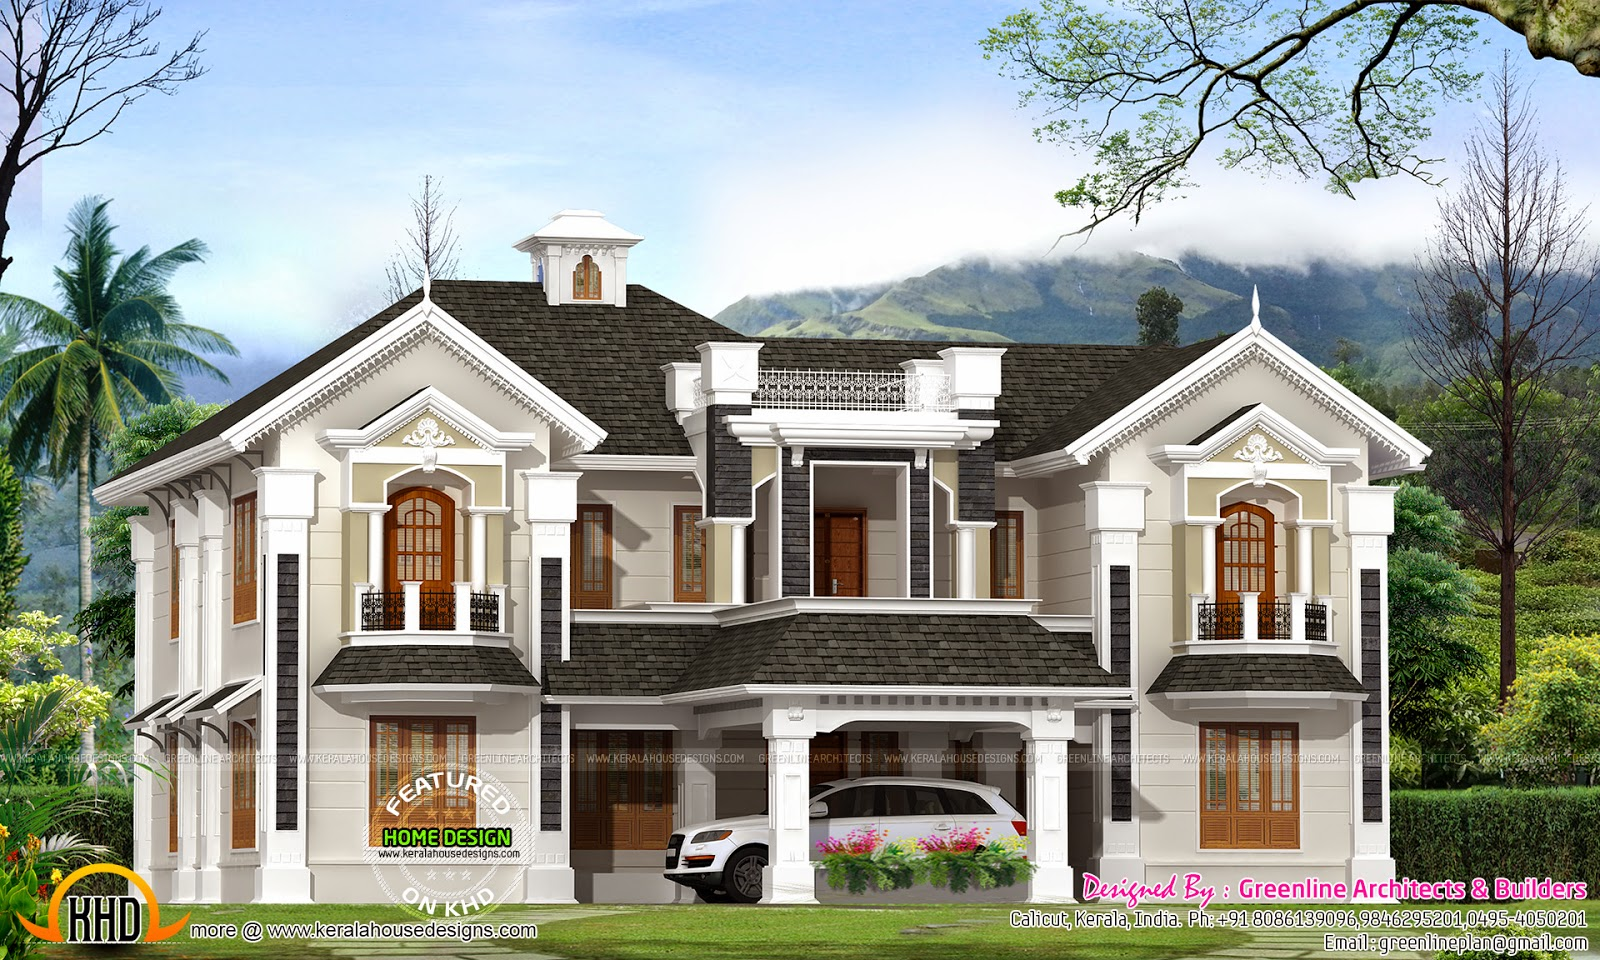 Colonial style house in kerala kerala home design and for Colonial home designs